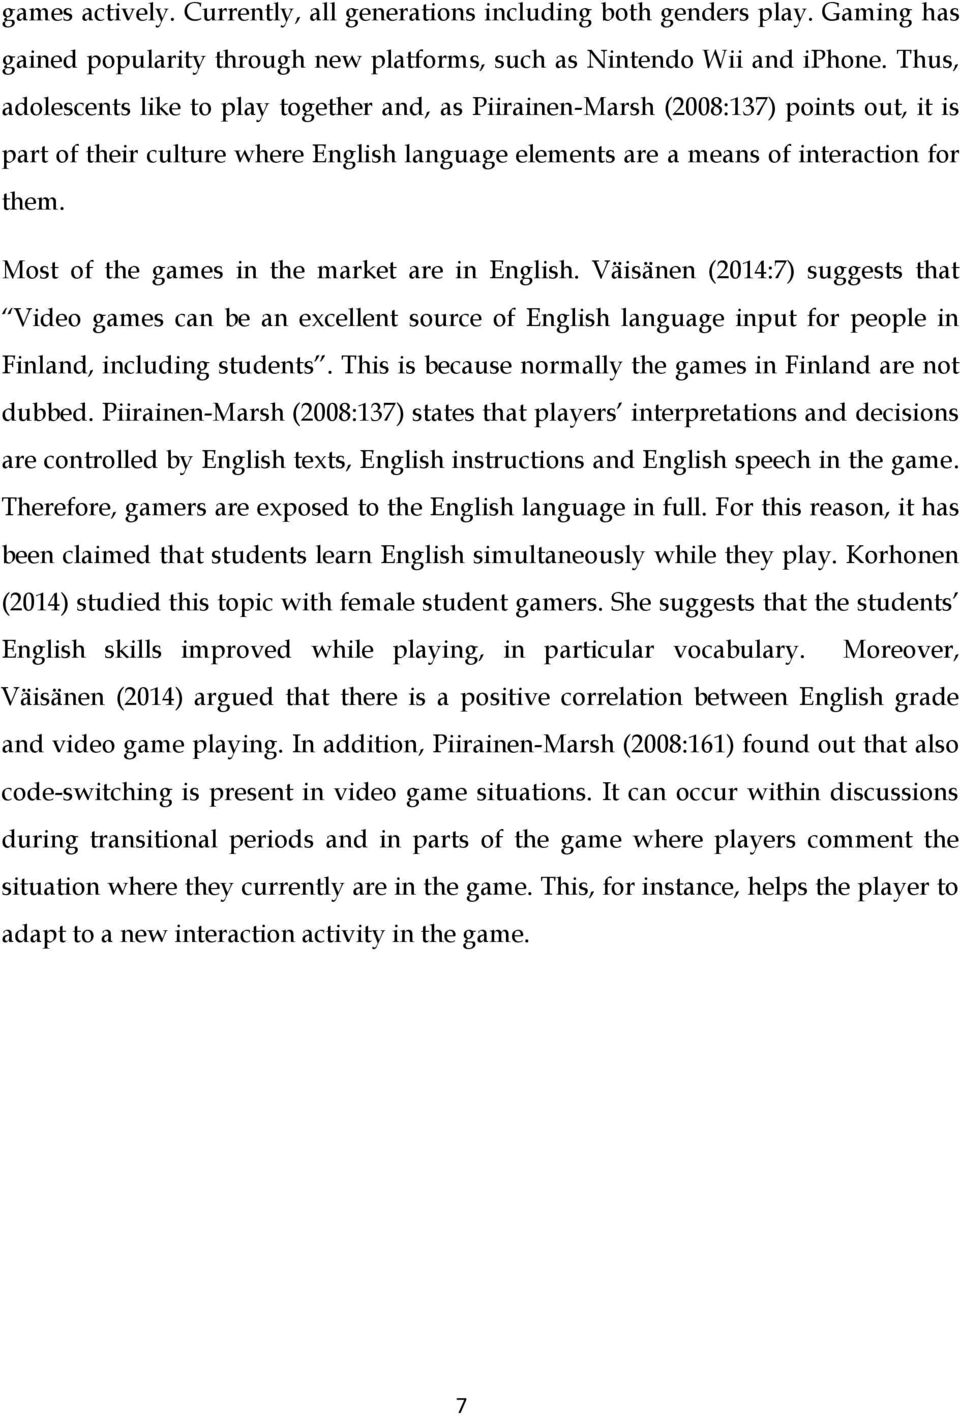 Most of the games in the market are in English. Väisänen (2014:7) suggests that Video games can be an excellent source of English language input for people in Finland, including students.